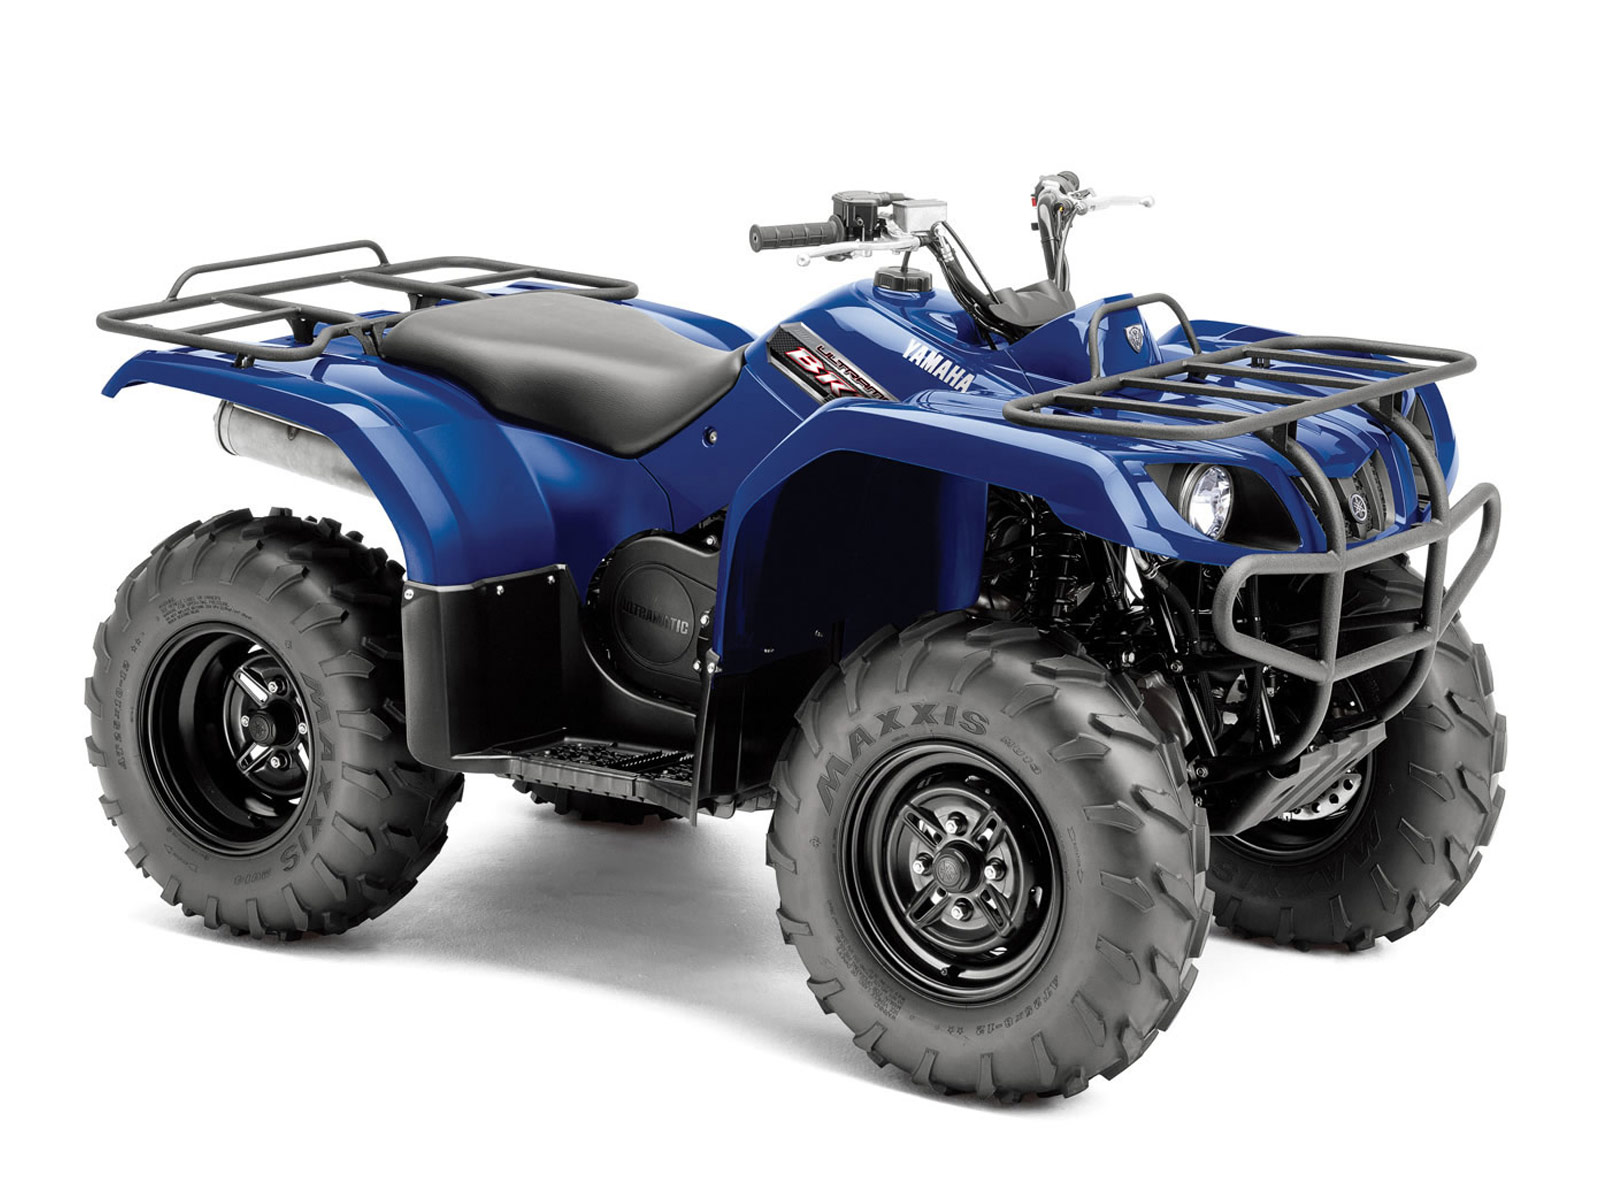 2012 yamaha bruin 350 auto 4x4 atv pictures. Black Bedroom Furniture Sets. Home Design Ideas